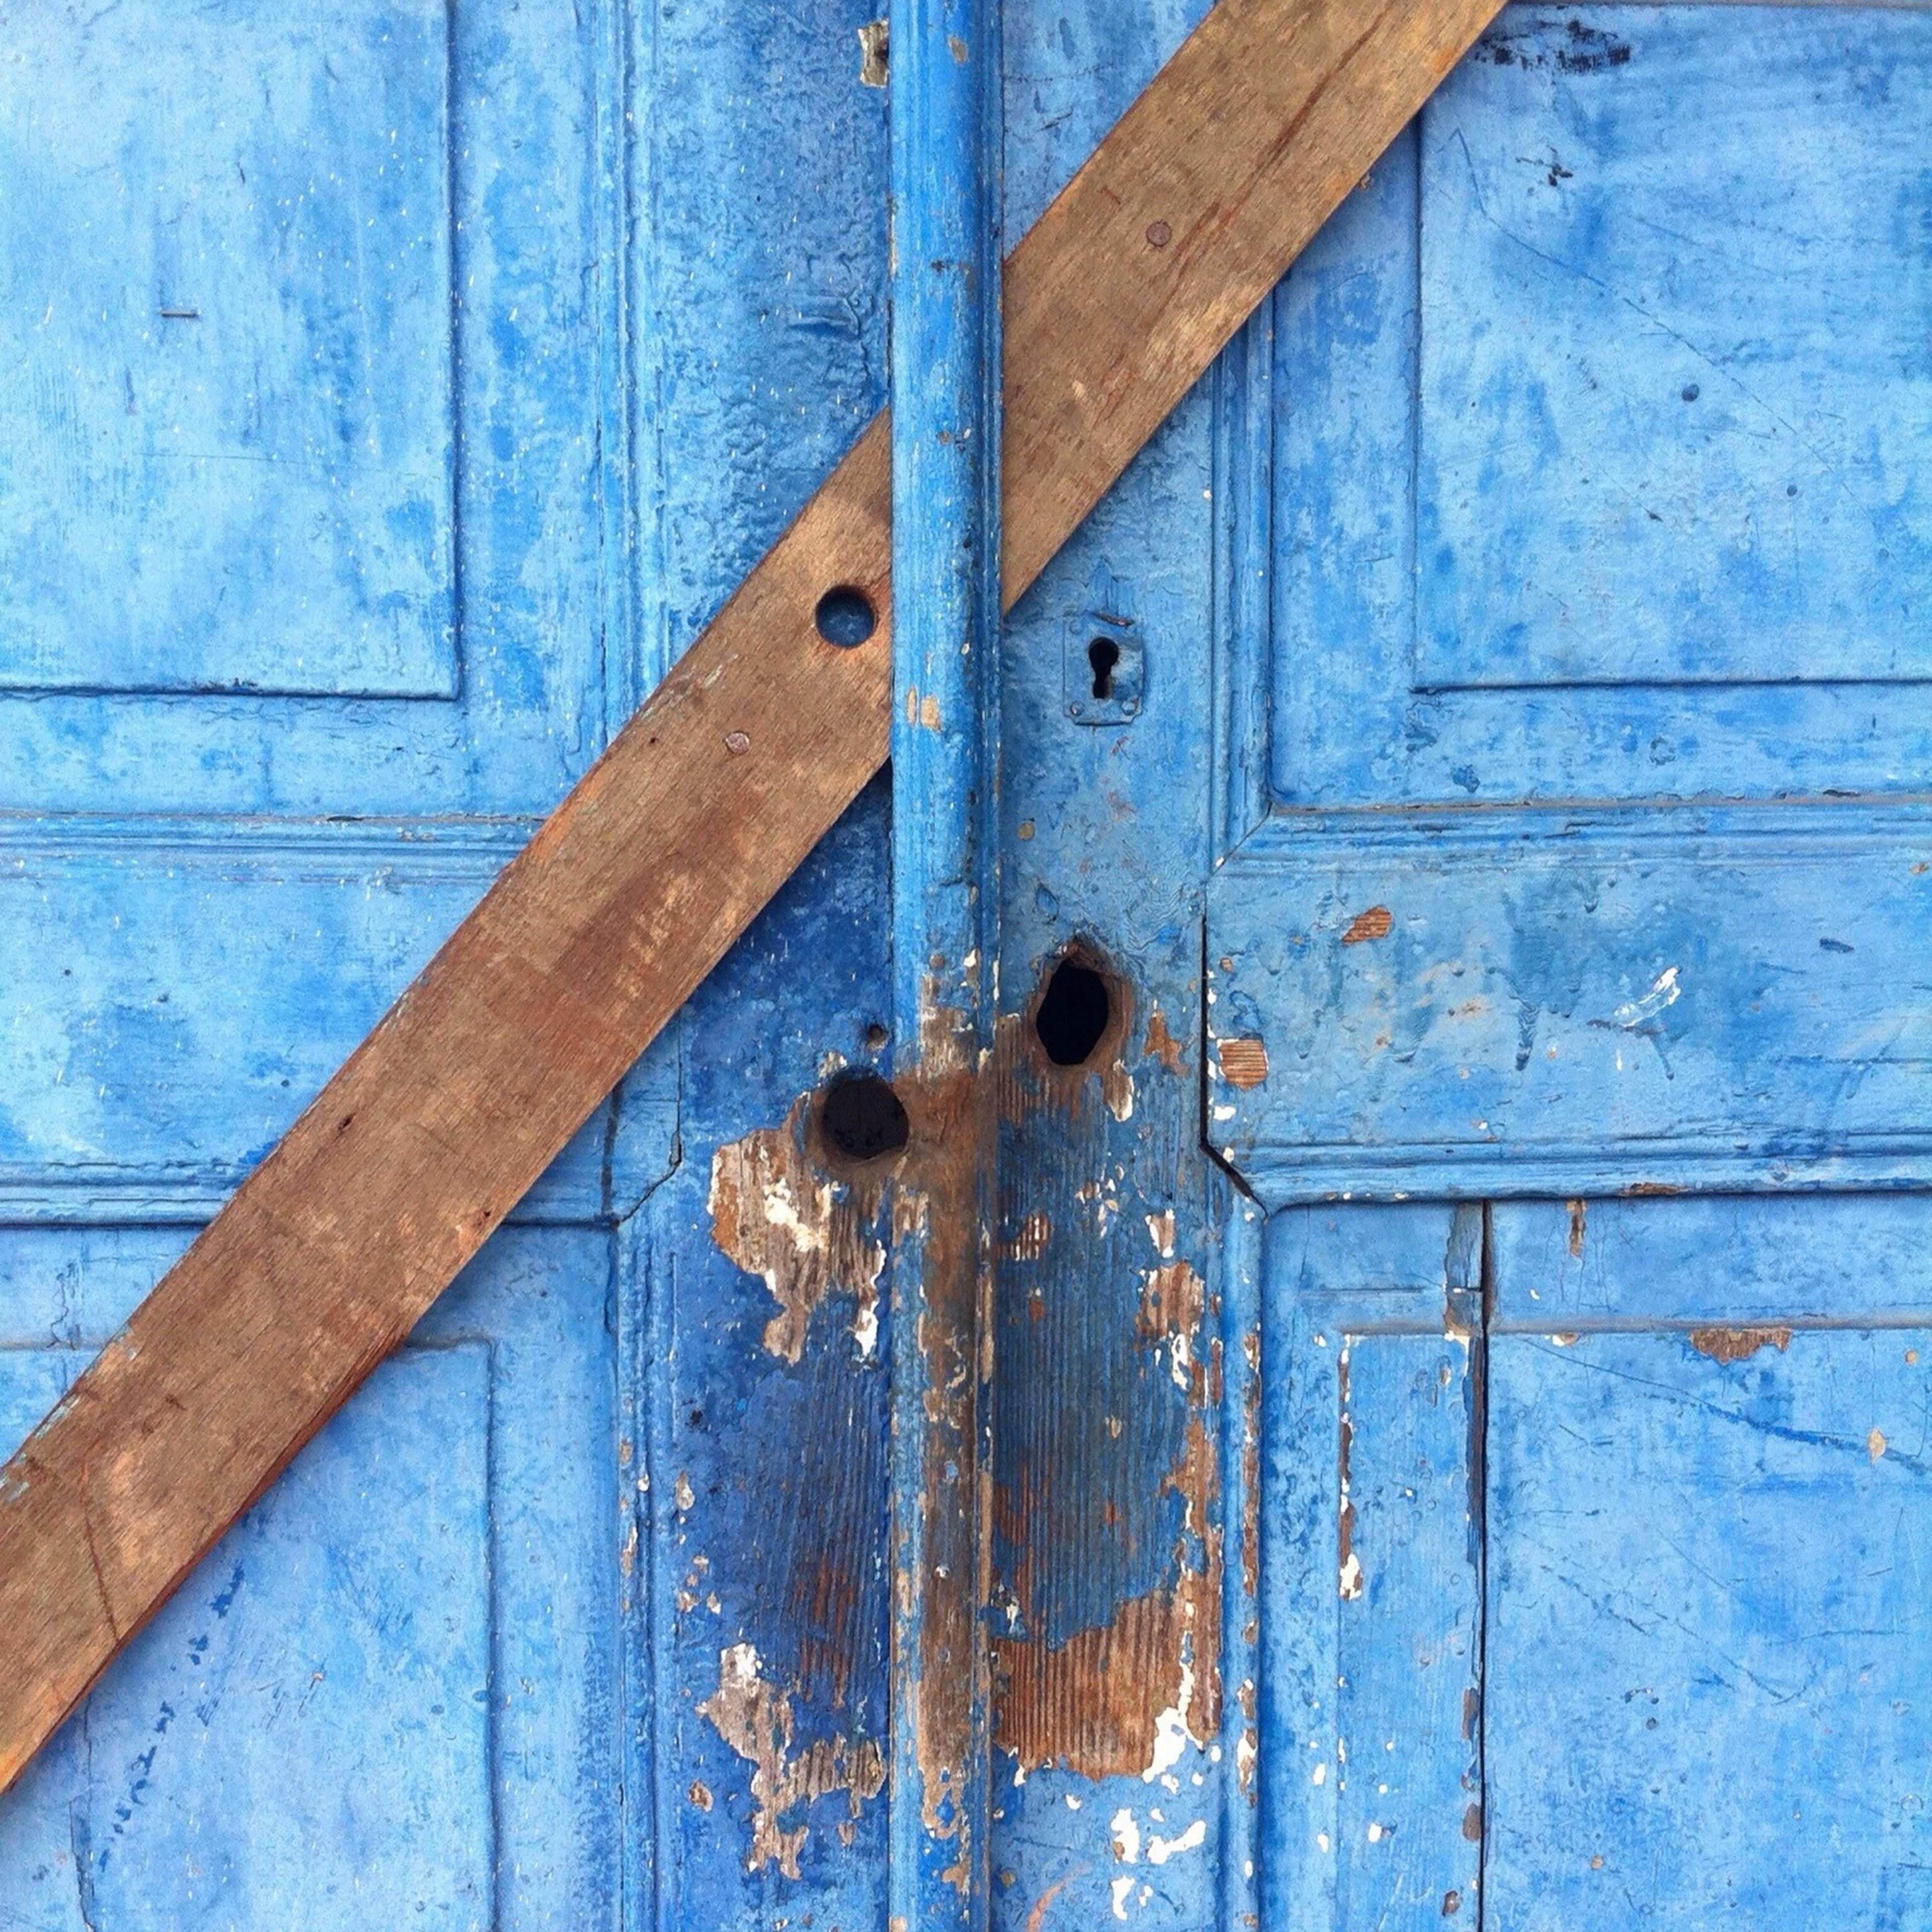 wood - material, weathered, rusty, door, wooden, old, metal, full frame, close-up, backgrounds, blue, safety, protection, closed, wood, security, textured, deterioration, damaged, run-down